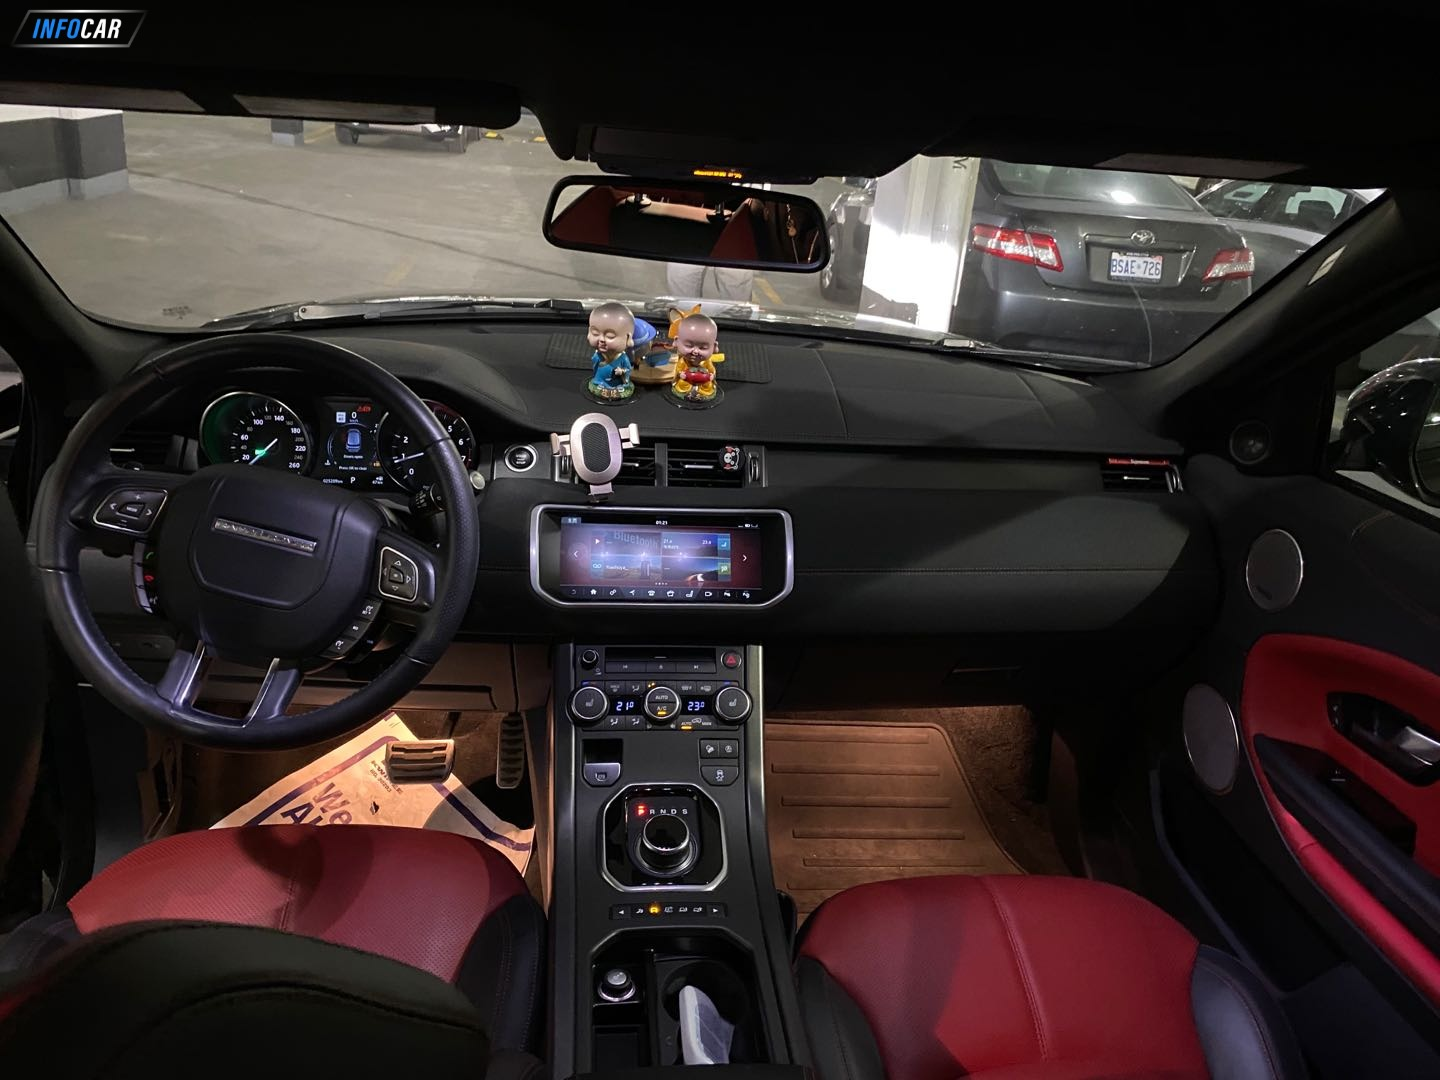 2018 Land Rover Range Rover Evoque HSE Dynamic - INFOCAR - Toronto's Most Comprehensive New and Used Auto Trading Platform